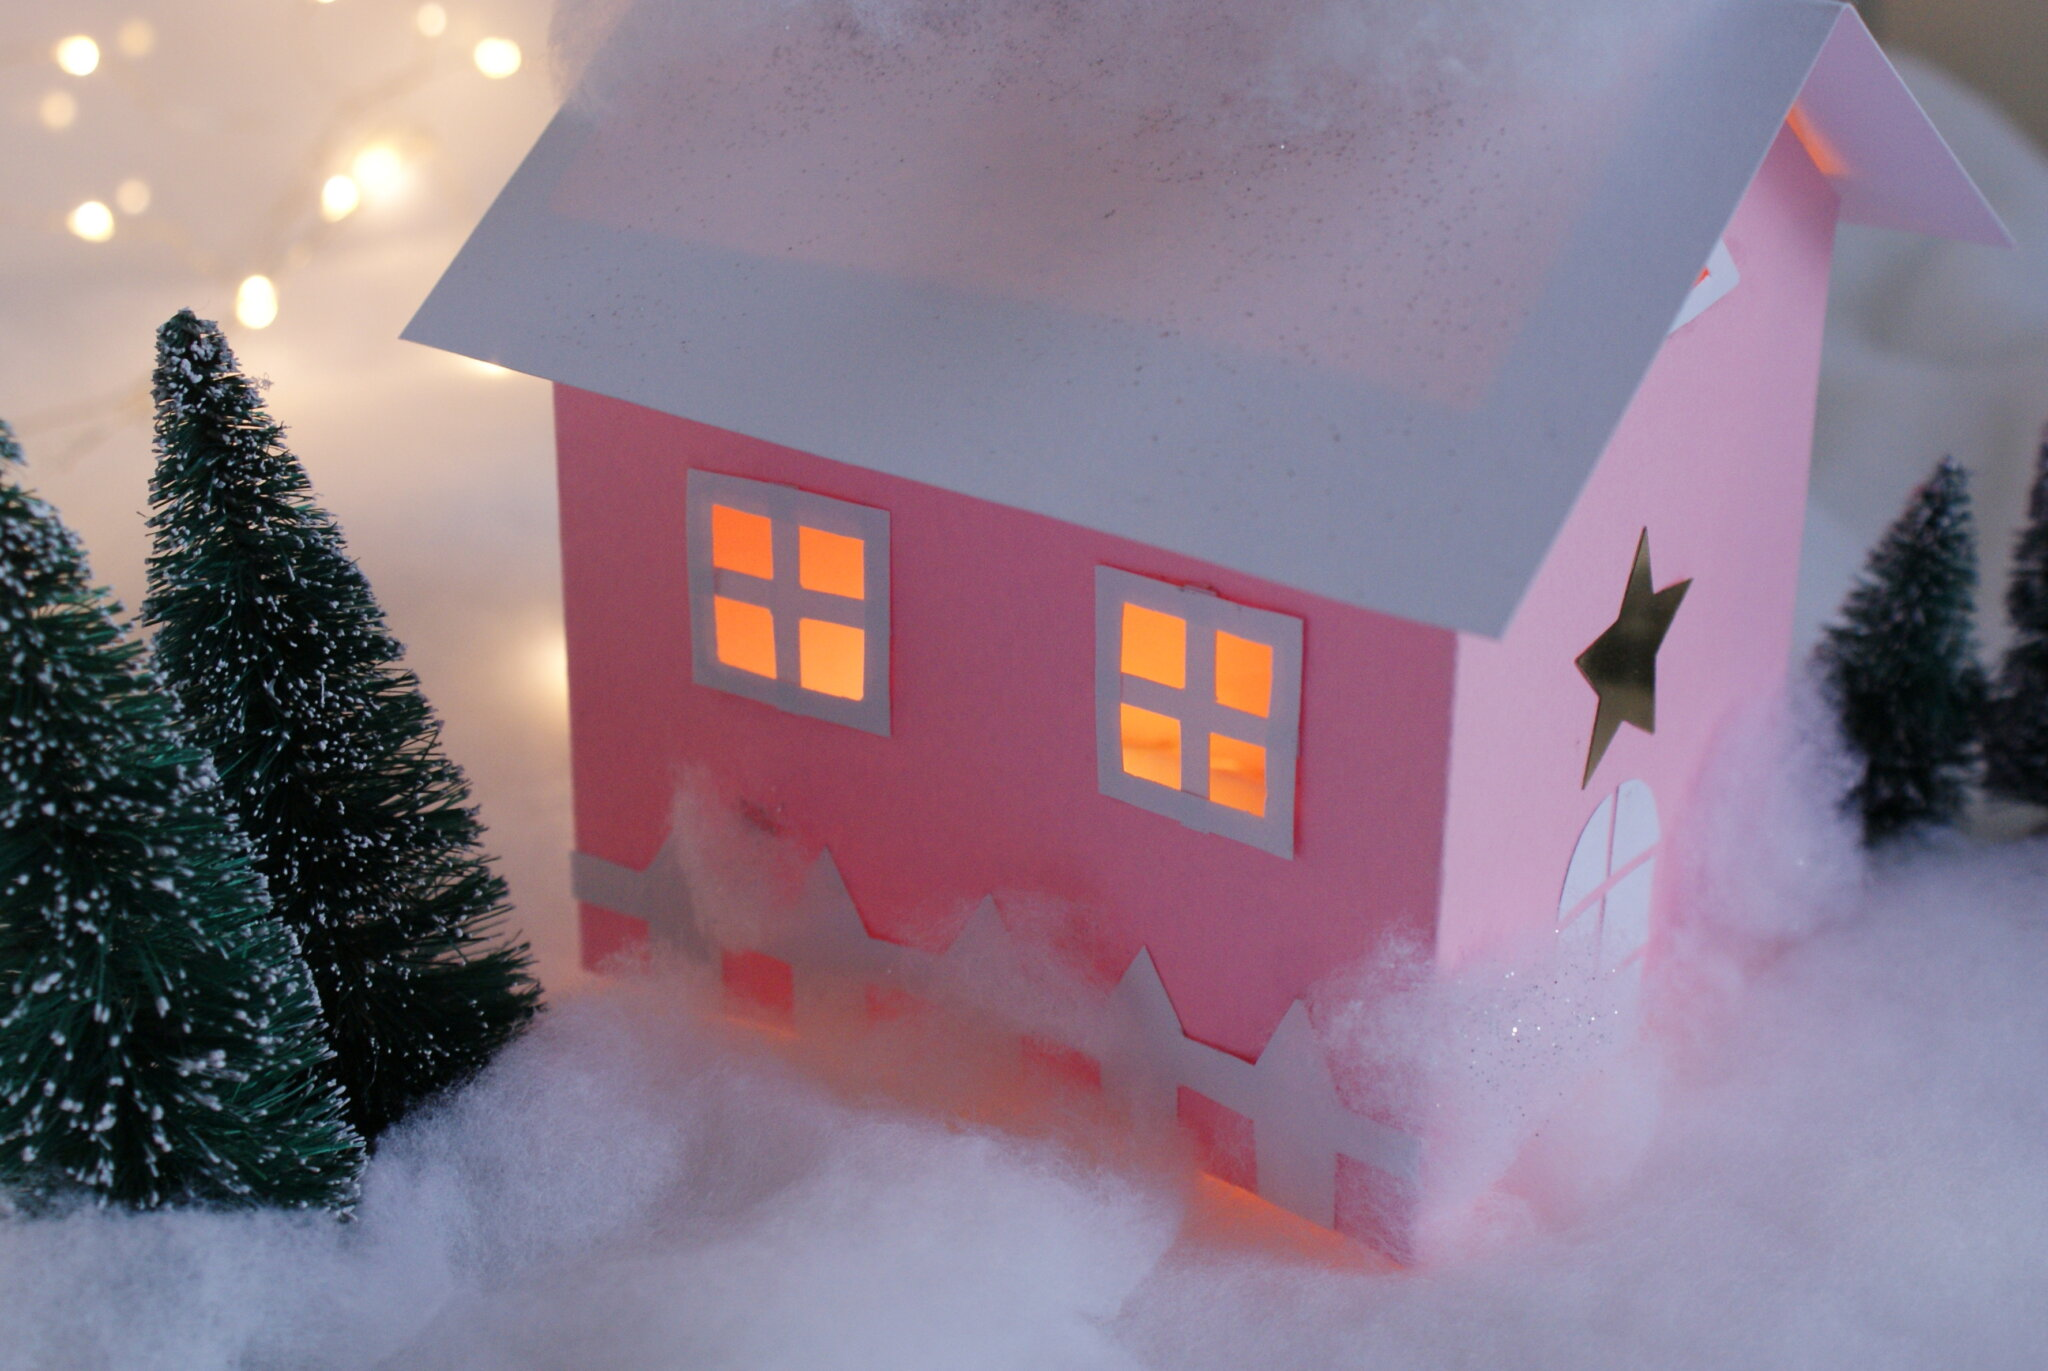 diy paper house christmas winter scene village craft idea decor home easy tutorial glitter fairy ultimate